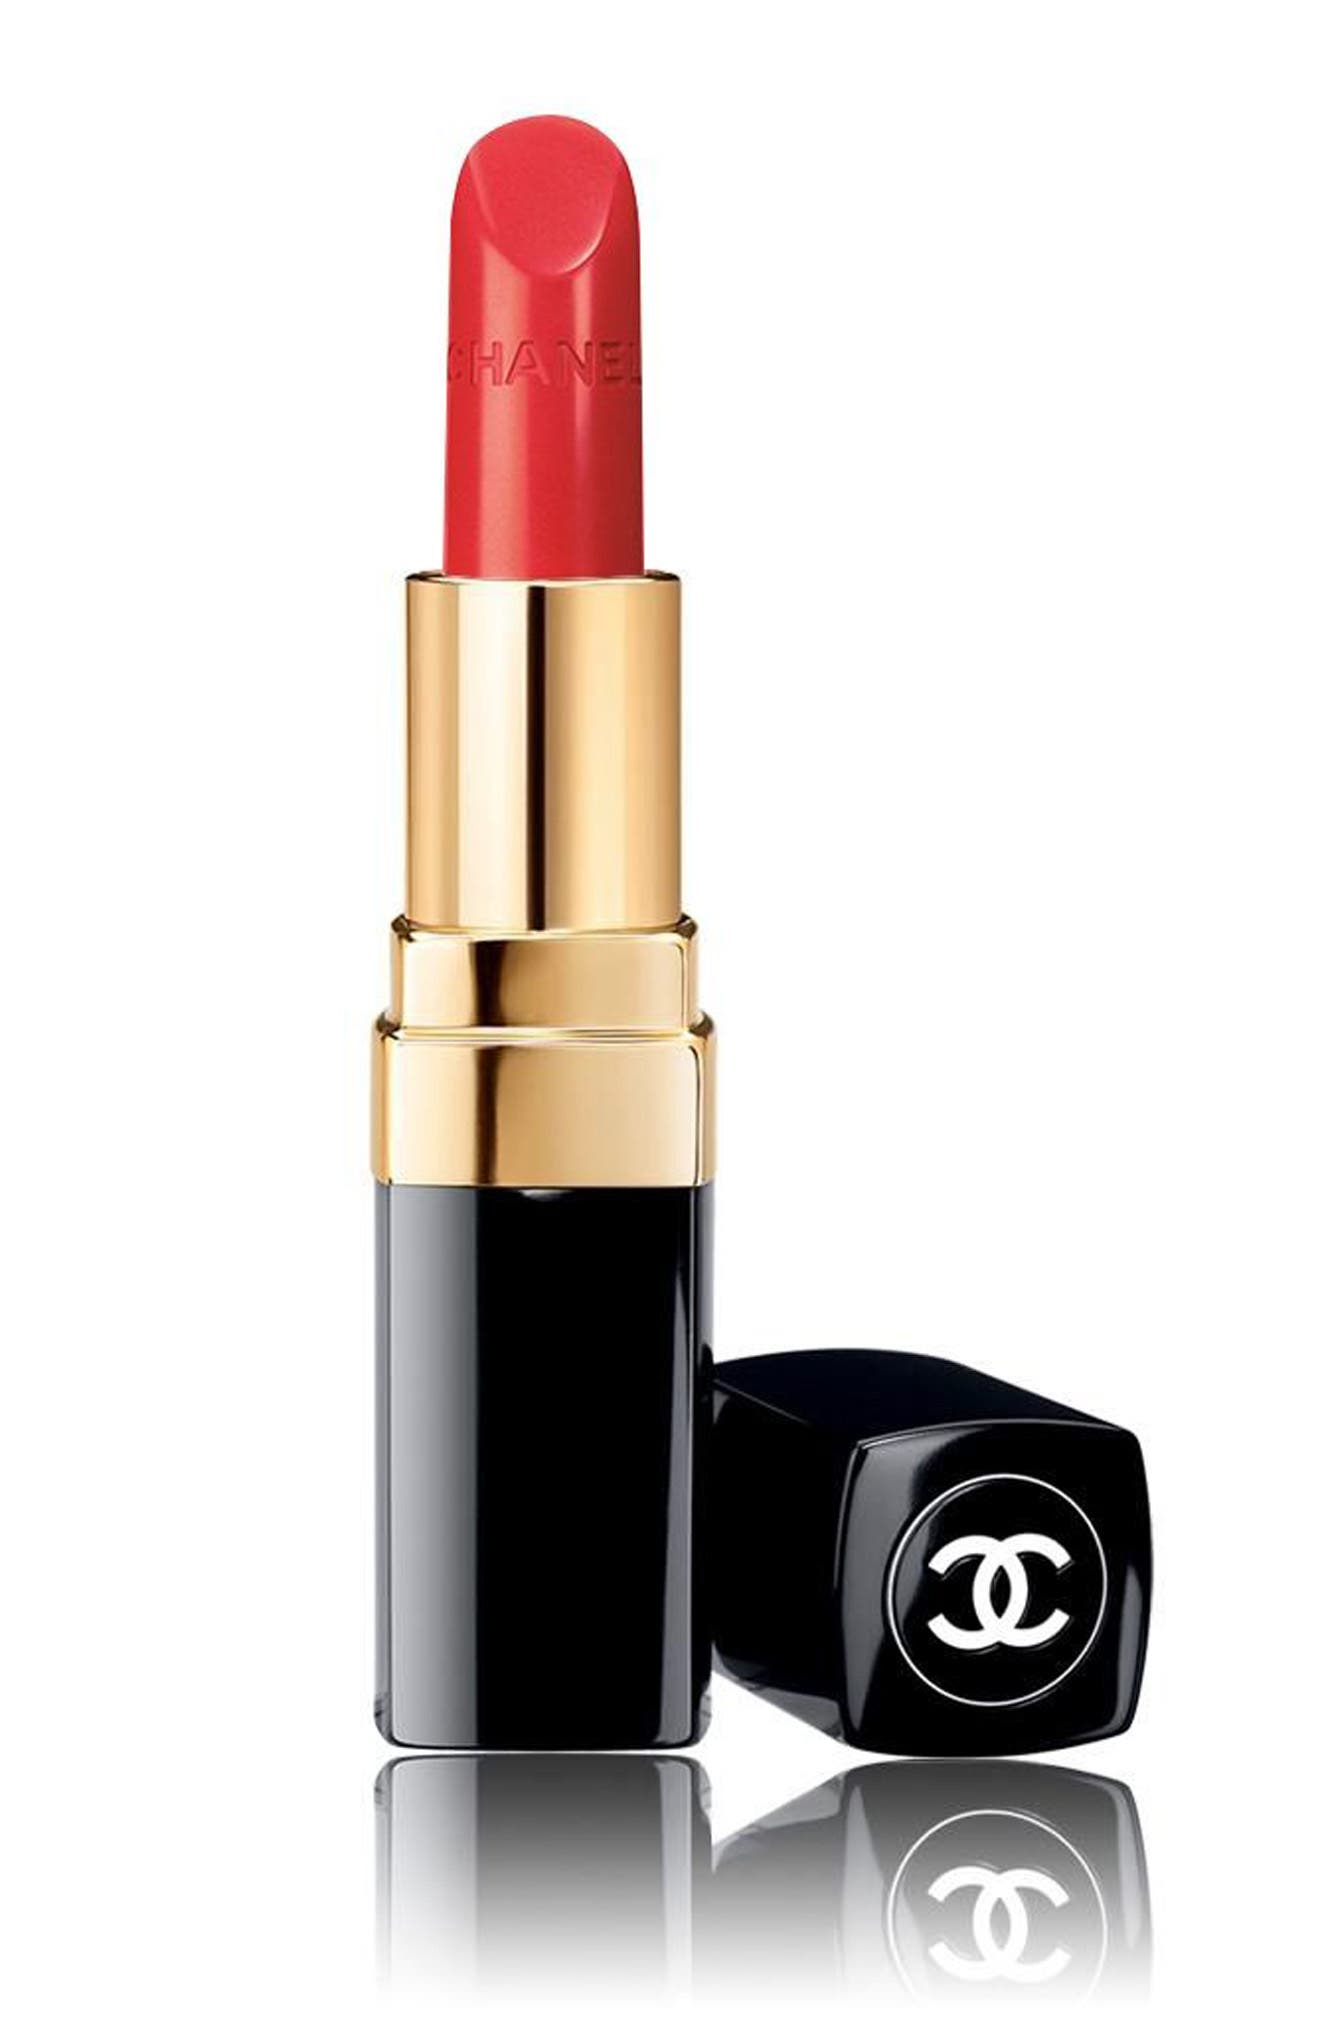 nordstrom chanel makeup  Style Guru: Fashion, Glitz, Glamour, Style unplugged